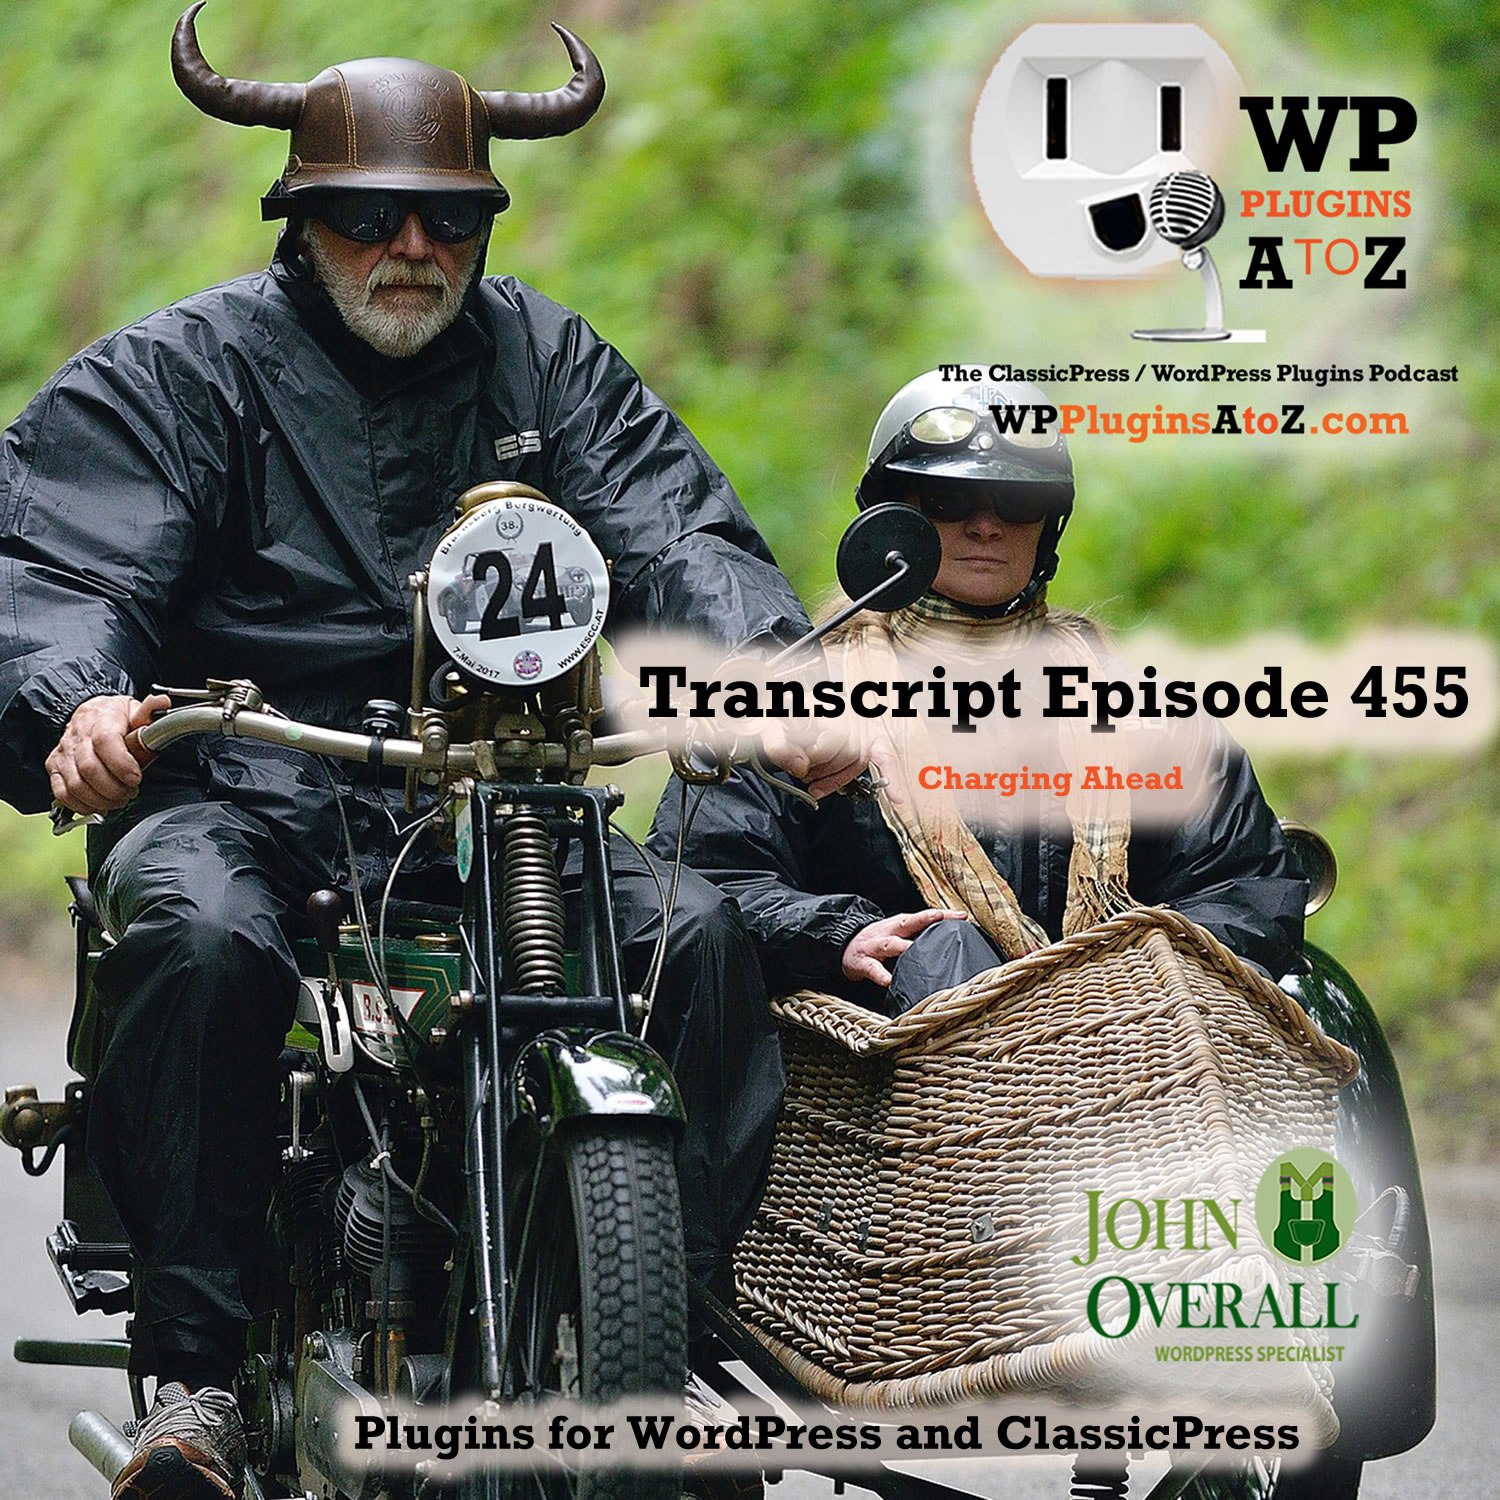 It's Episode 455 with plugins for Collecting Tithes Controlling the Elements, Sticking it to the Top, and ClassicPress Options. It's all coming up on WordPress Plugins A-Z!